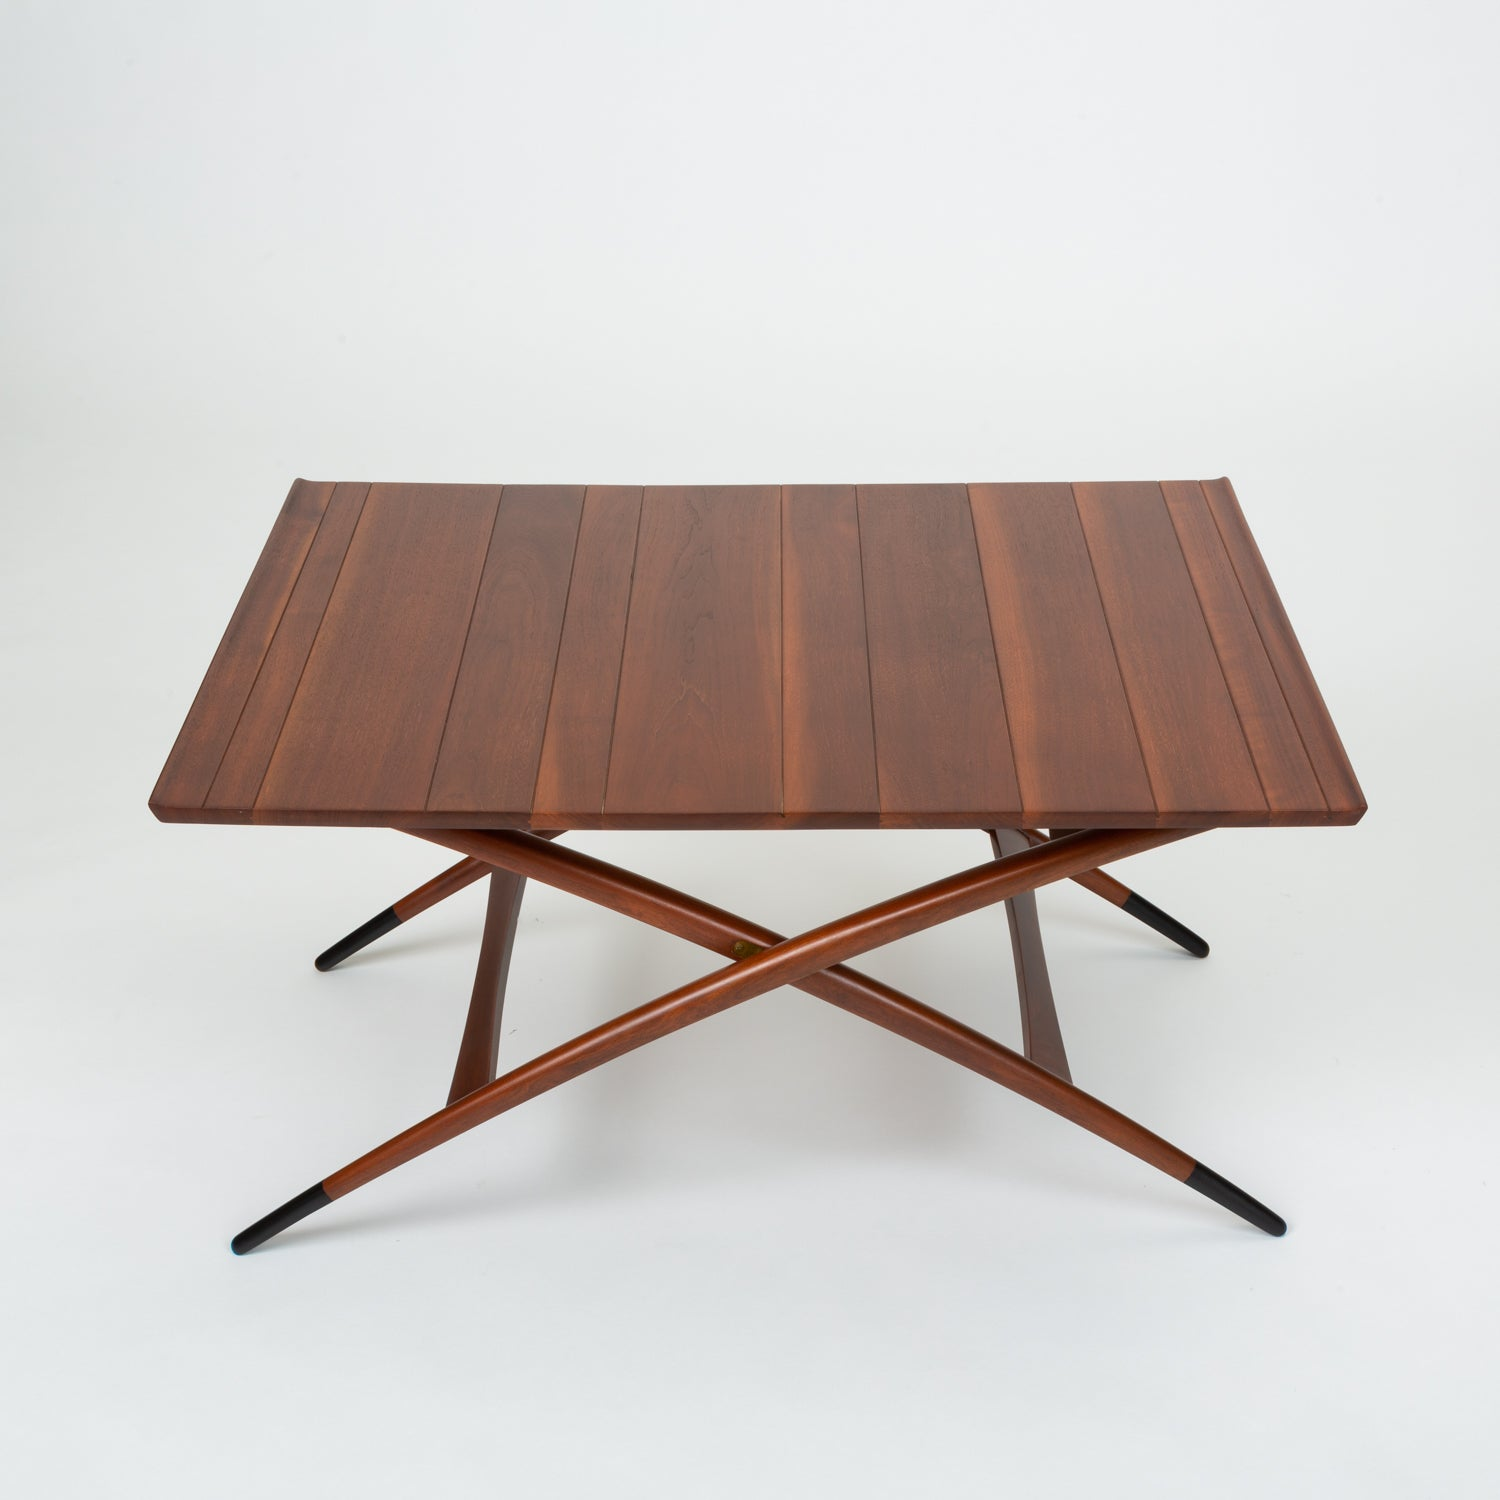 Adjustable Three-Height Coffee or Dining Table by Edward Wormley for Dunbar